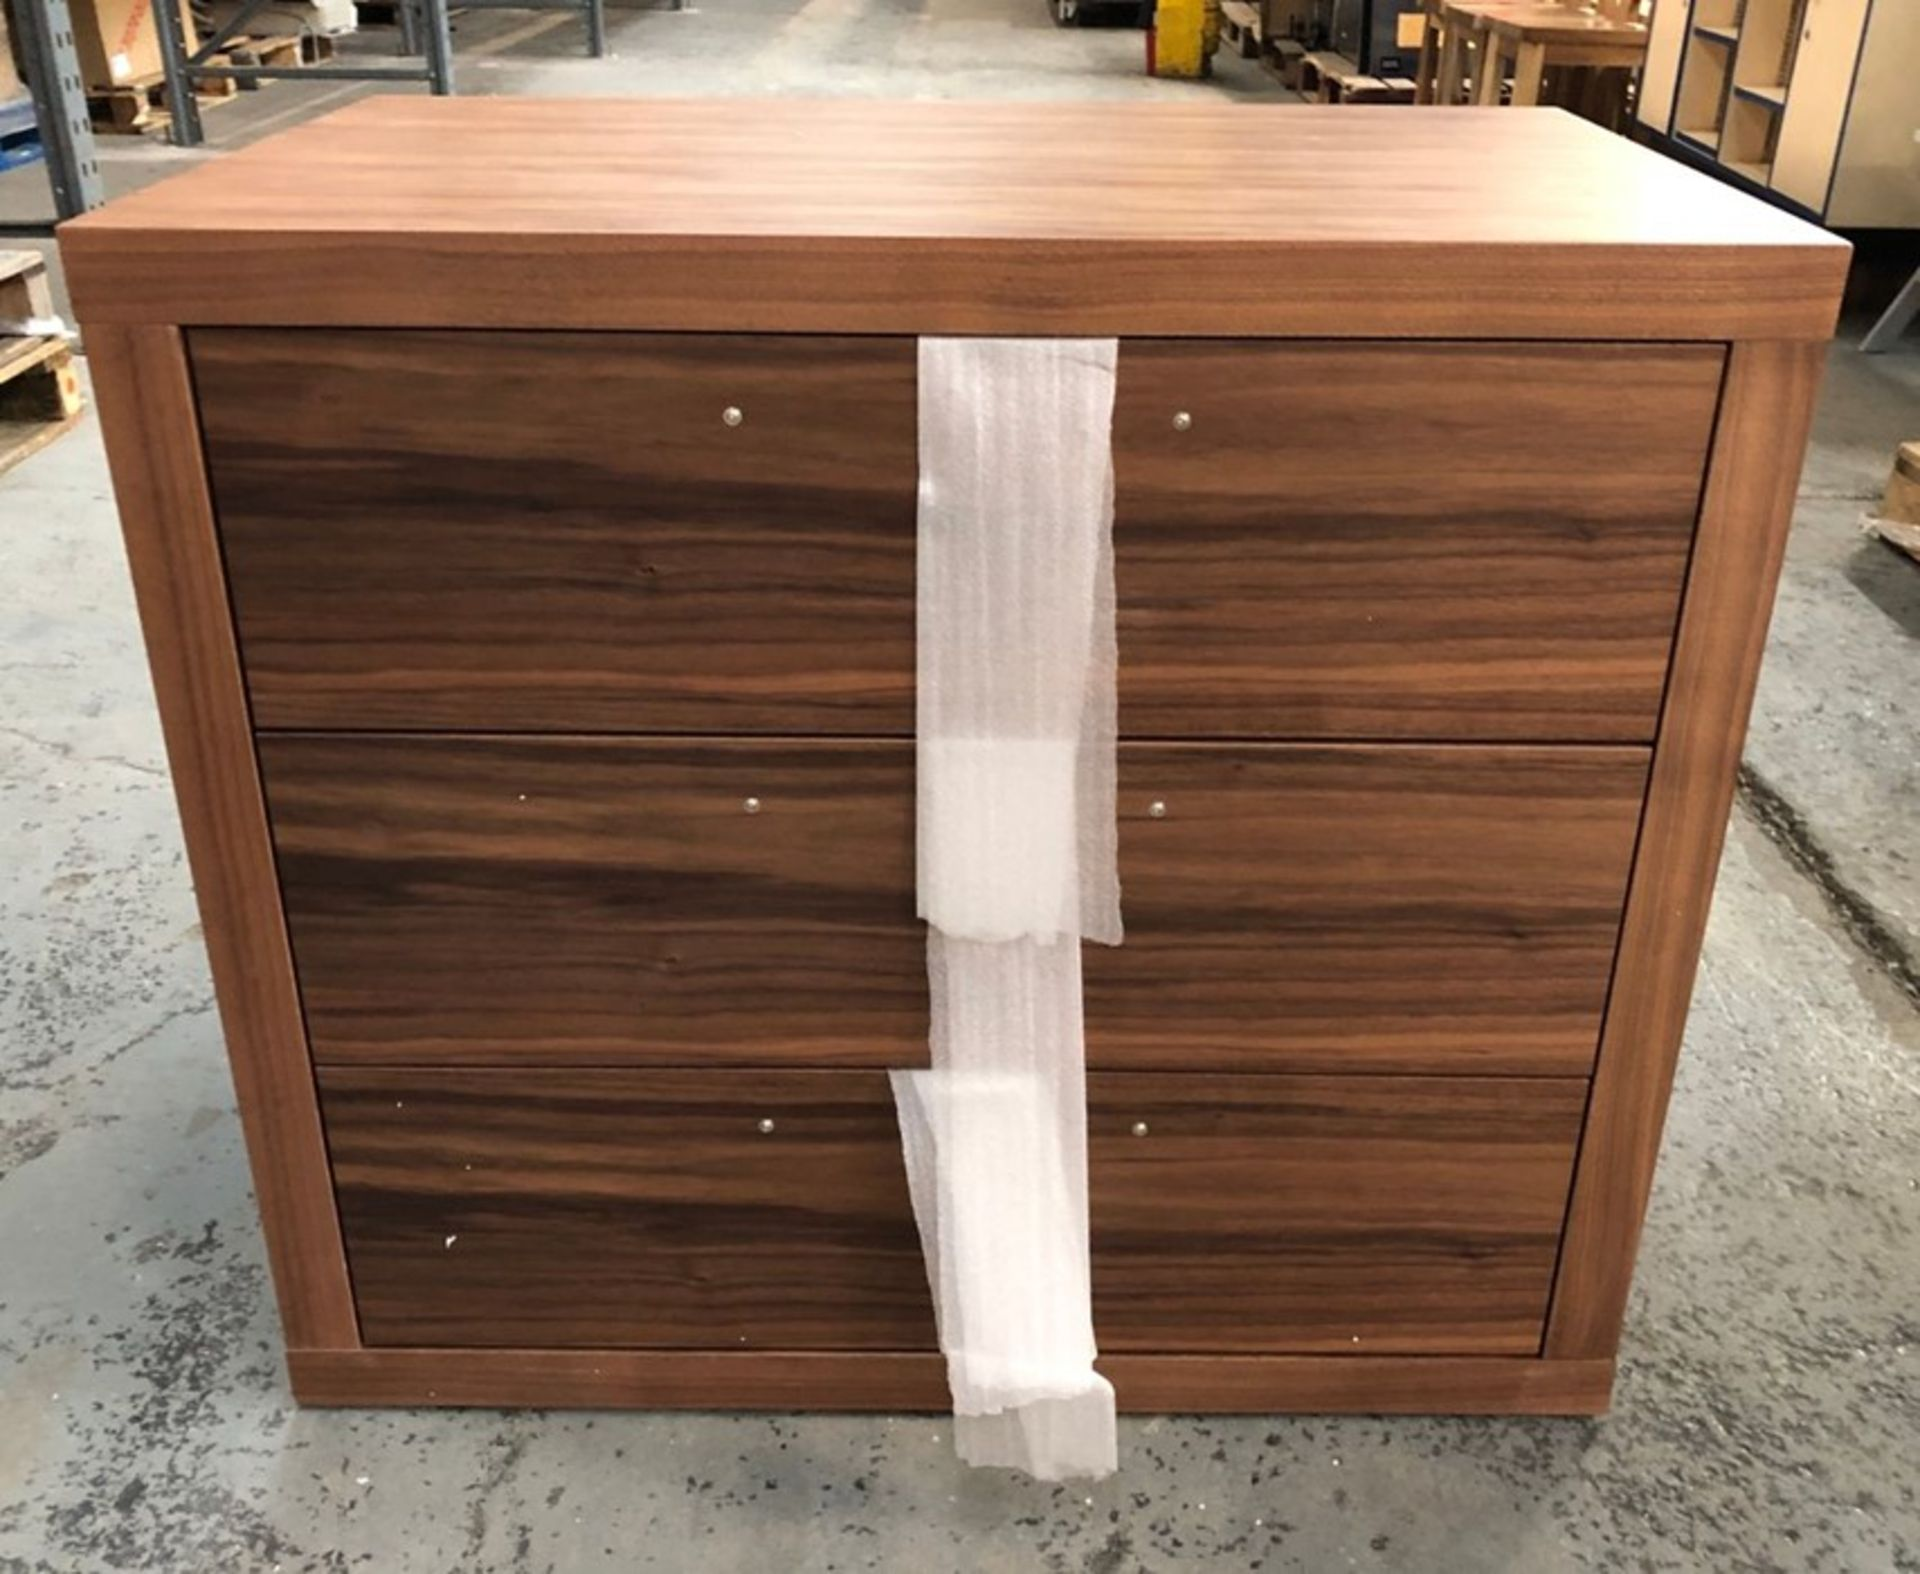 3-DRAWER CHEST IN WALNUT / SIZE: 850 X 500 X 750MM / CONDITION REPORT: TOP LEFT SIDE LOOSE WHEN